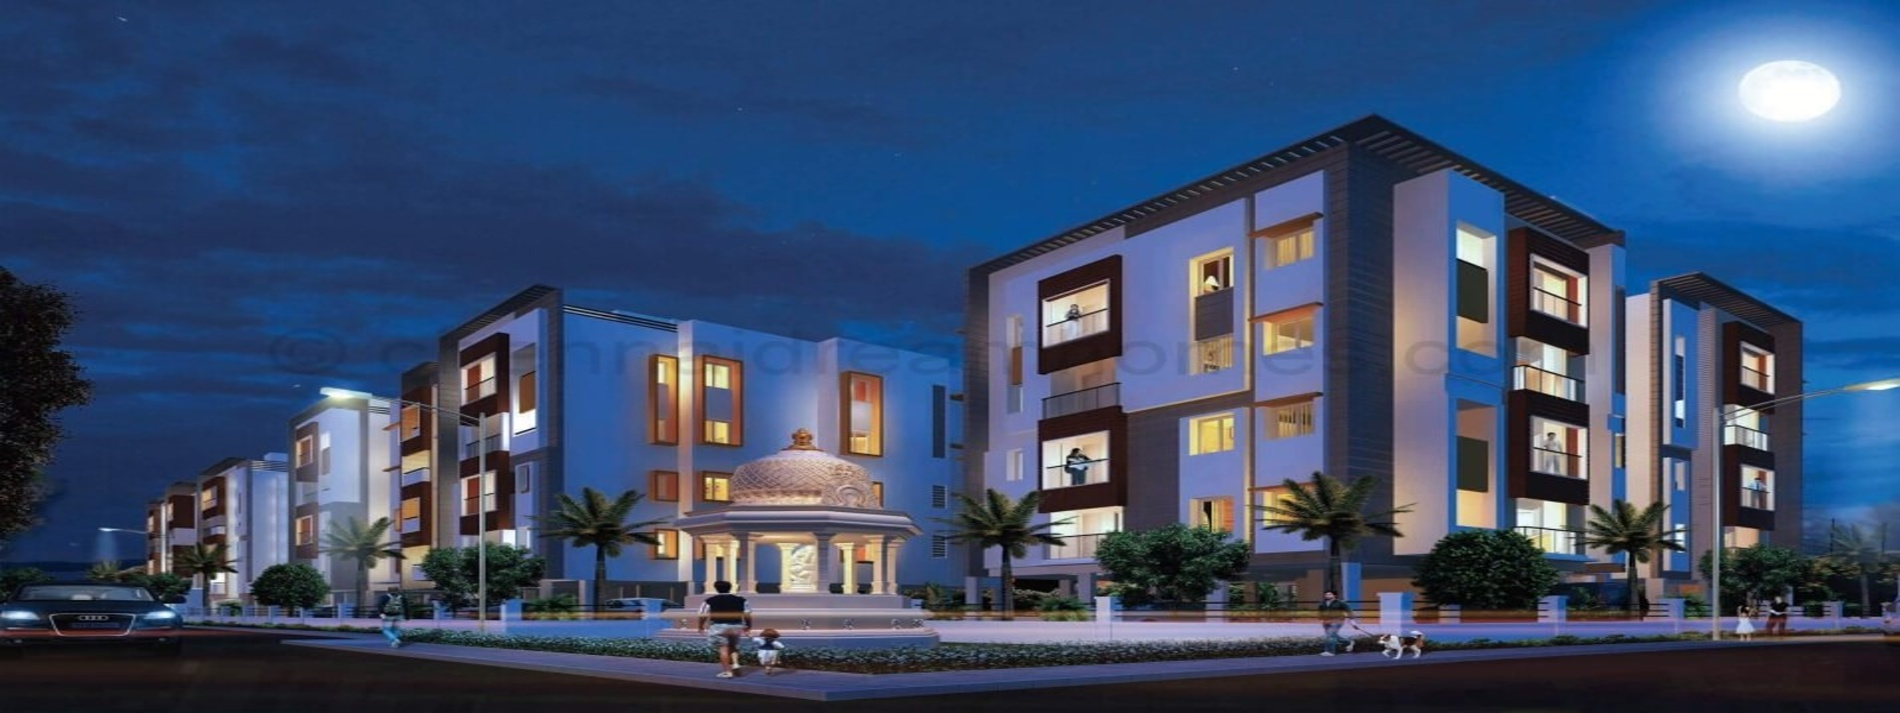 Flats For Sale In Chennai ⋆ Find Apartments, Villas